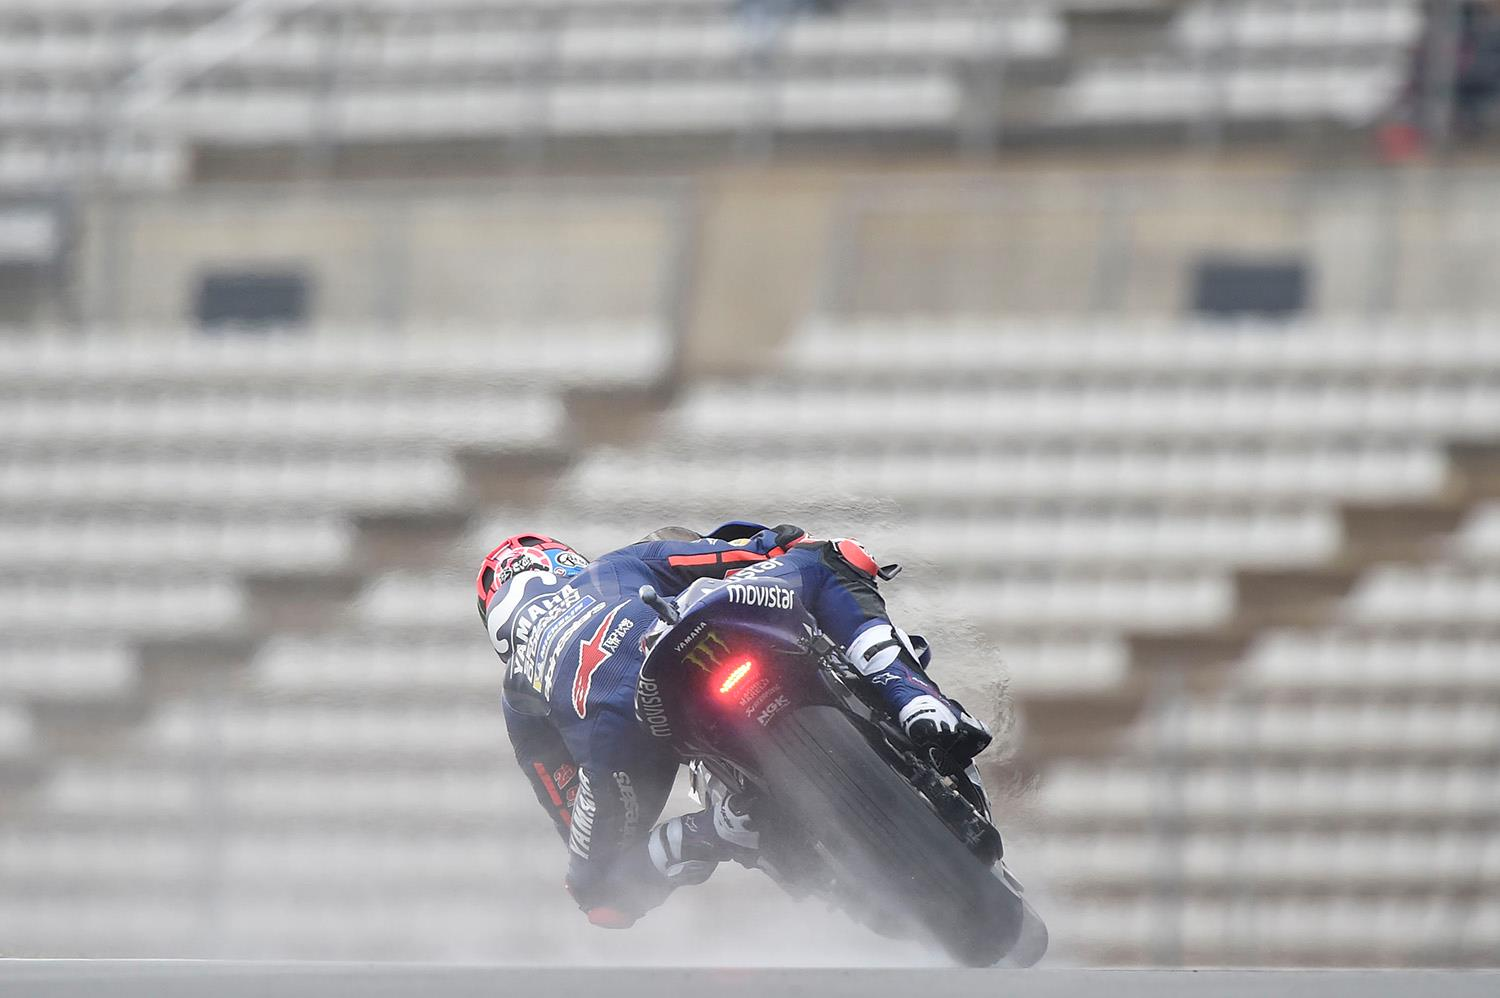 Motogp Vinales Moves From Q1 To Pole Position Mcn